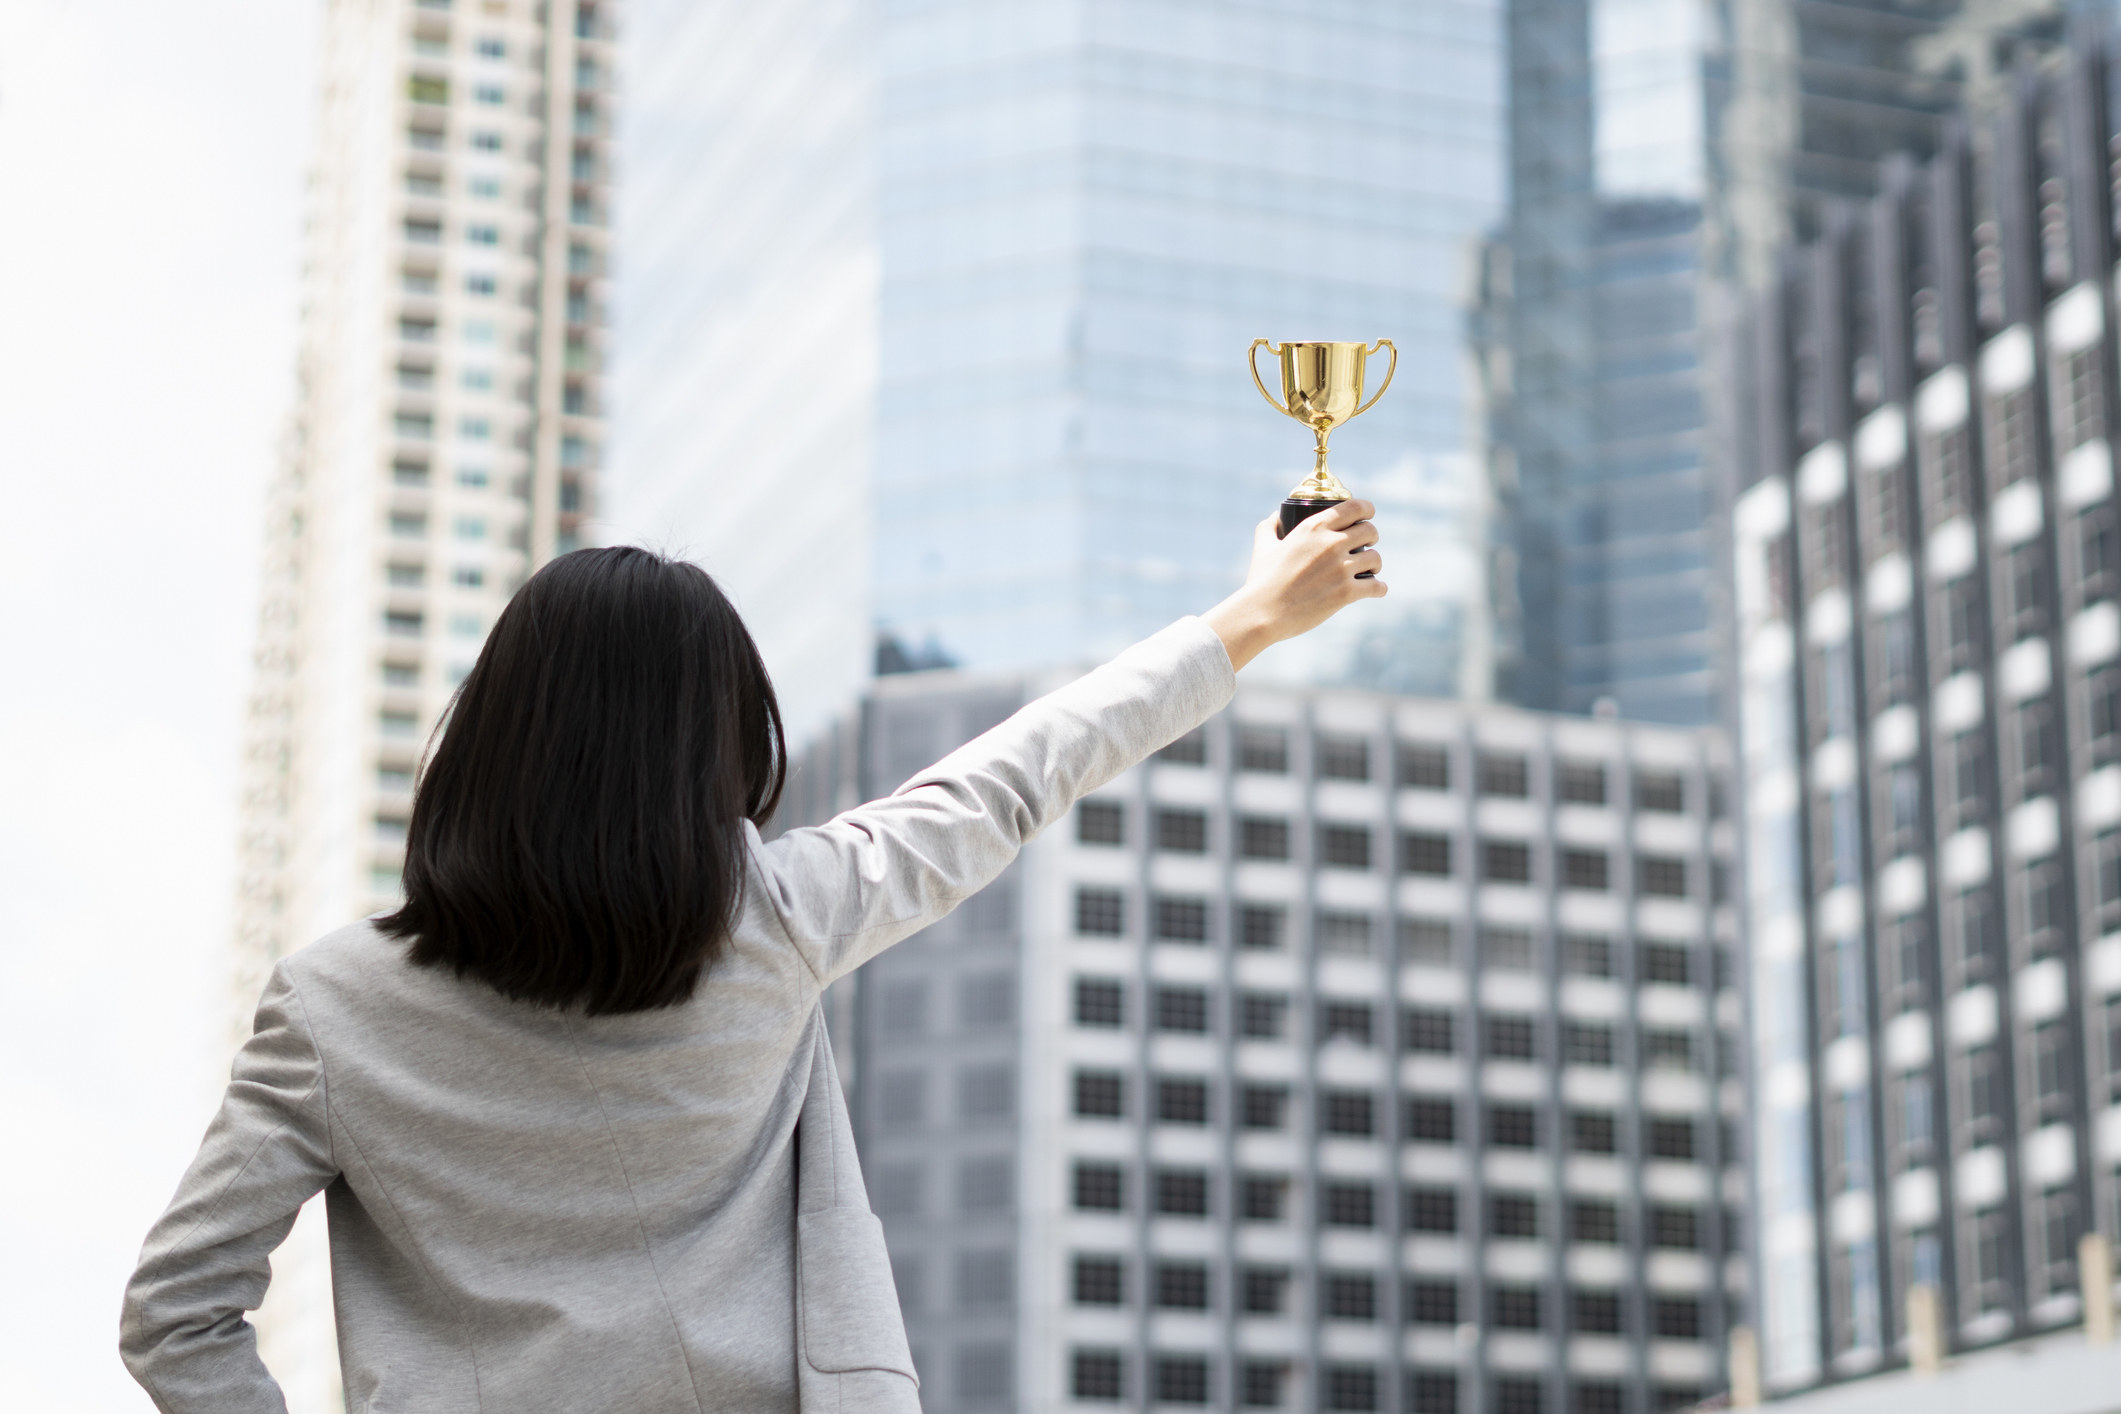 A woman holding up a small trophy as she looks at skyscrapers